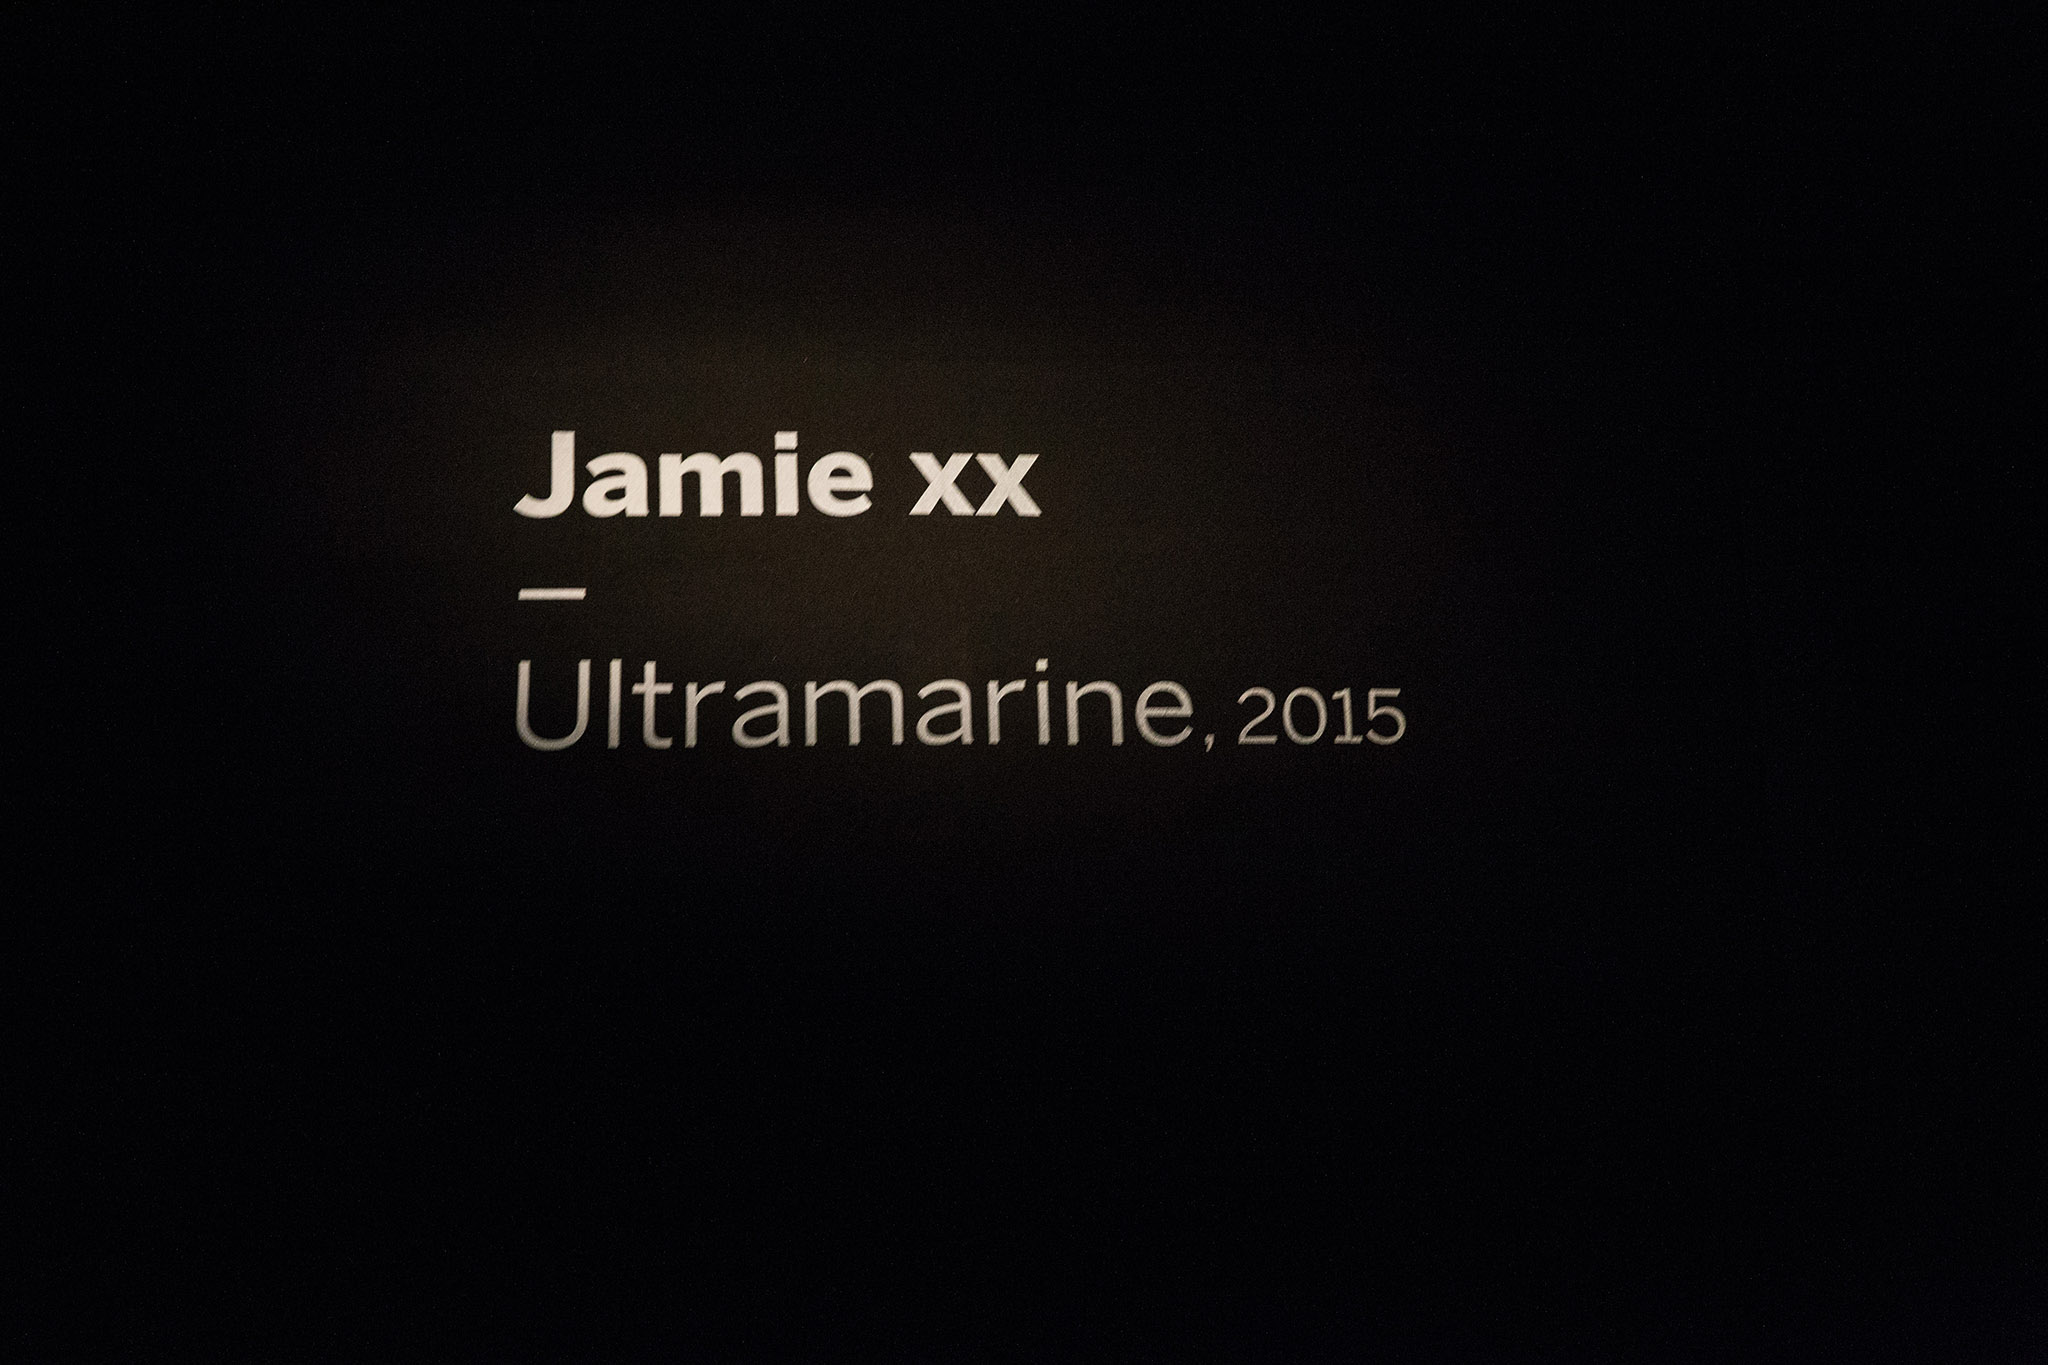 Jamie xx creates new 'Ultramarine' installation for Soundscapes exhibition